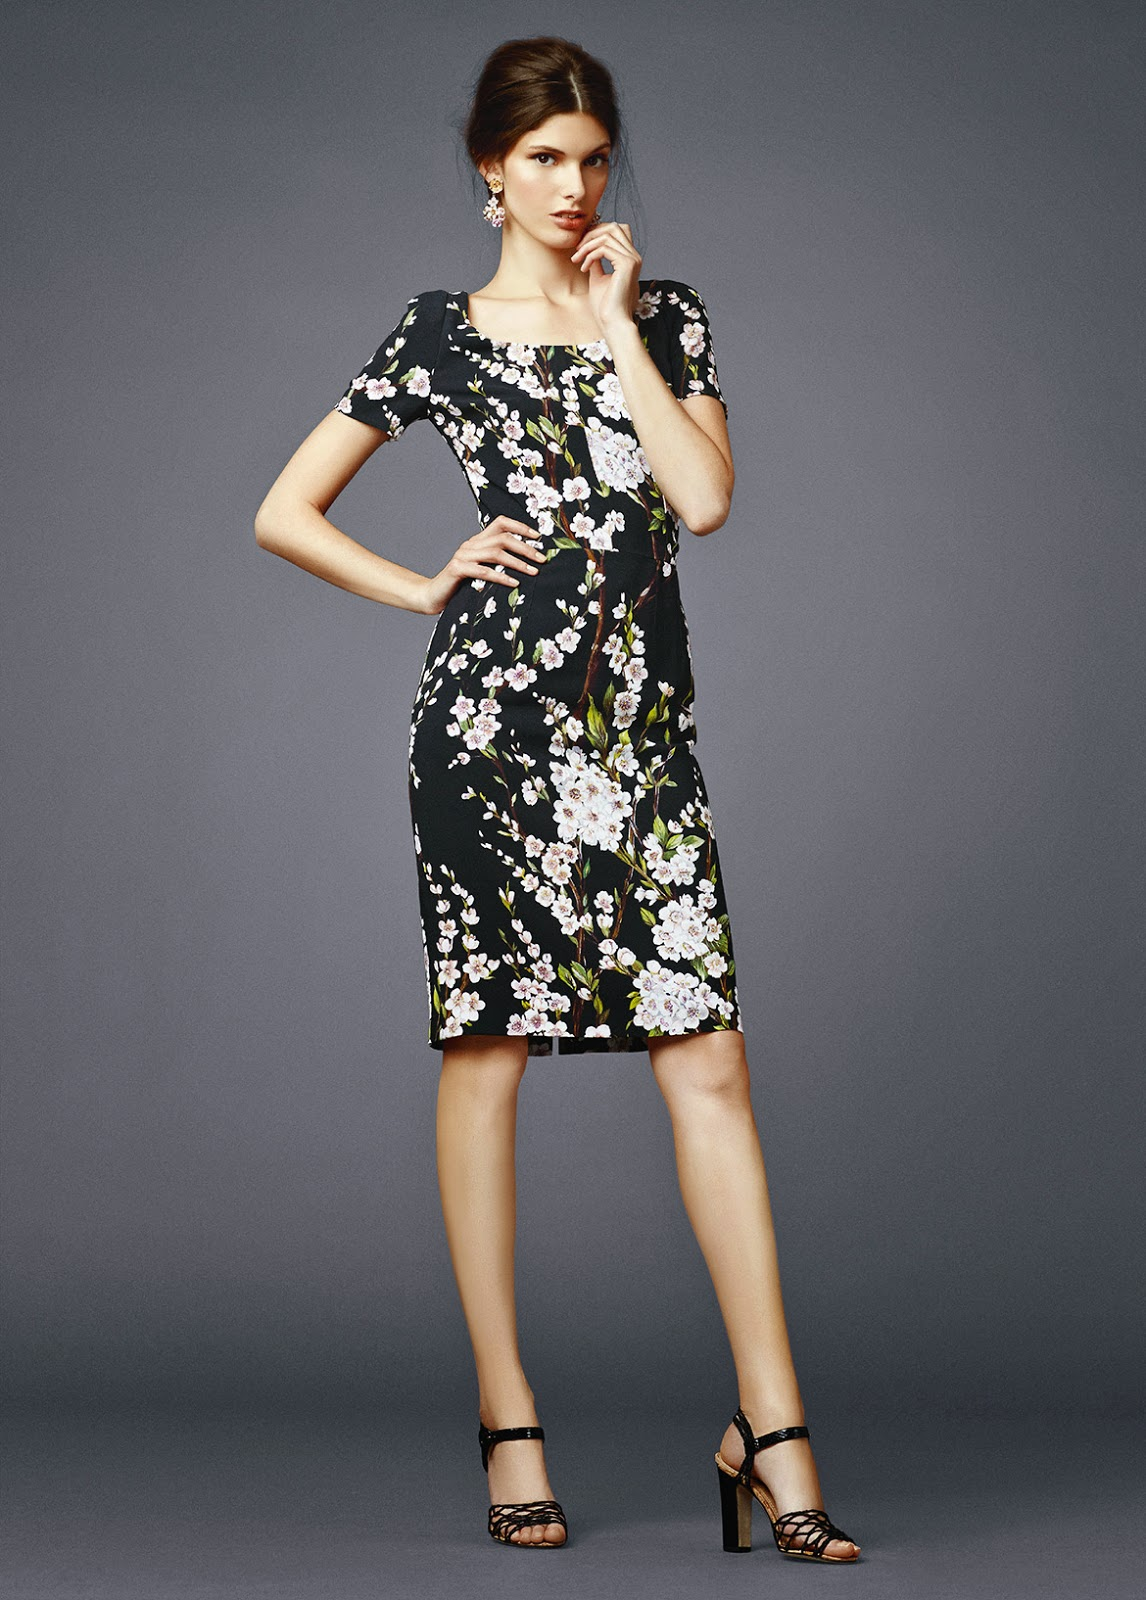 dolce gabbana 2014 fashion collection evening dress